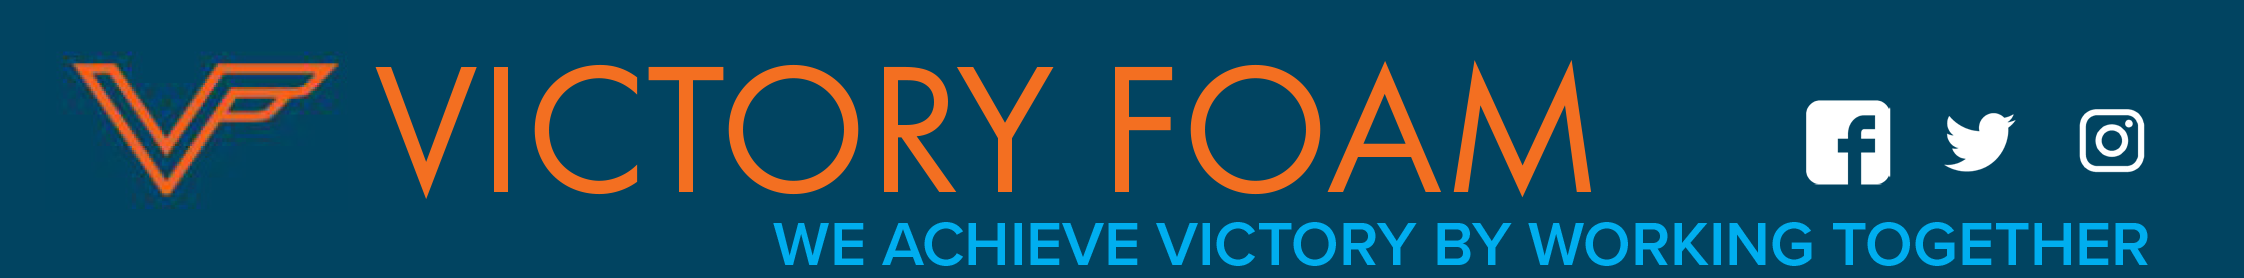 Victory Foam VF logo with the text, we achieve victory by working together.